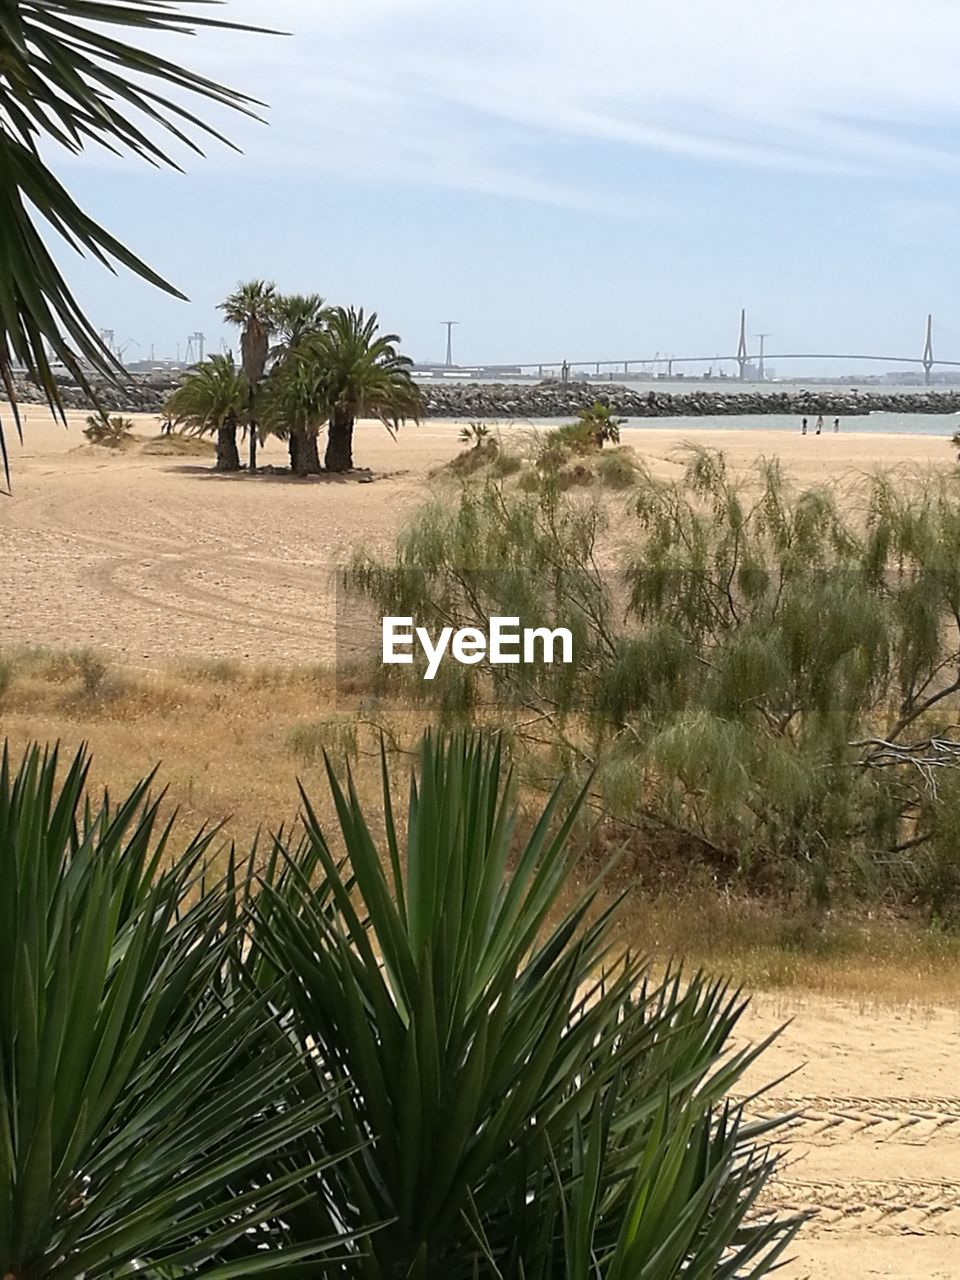 growth, tree, palm tree, nature, sky, beauty in nature, sand, plant, outdoors, no people, day, tranquility, water, scenics, landscape